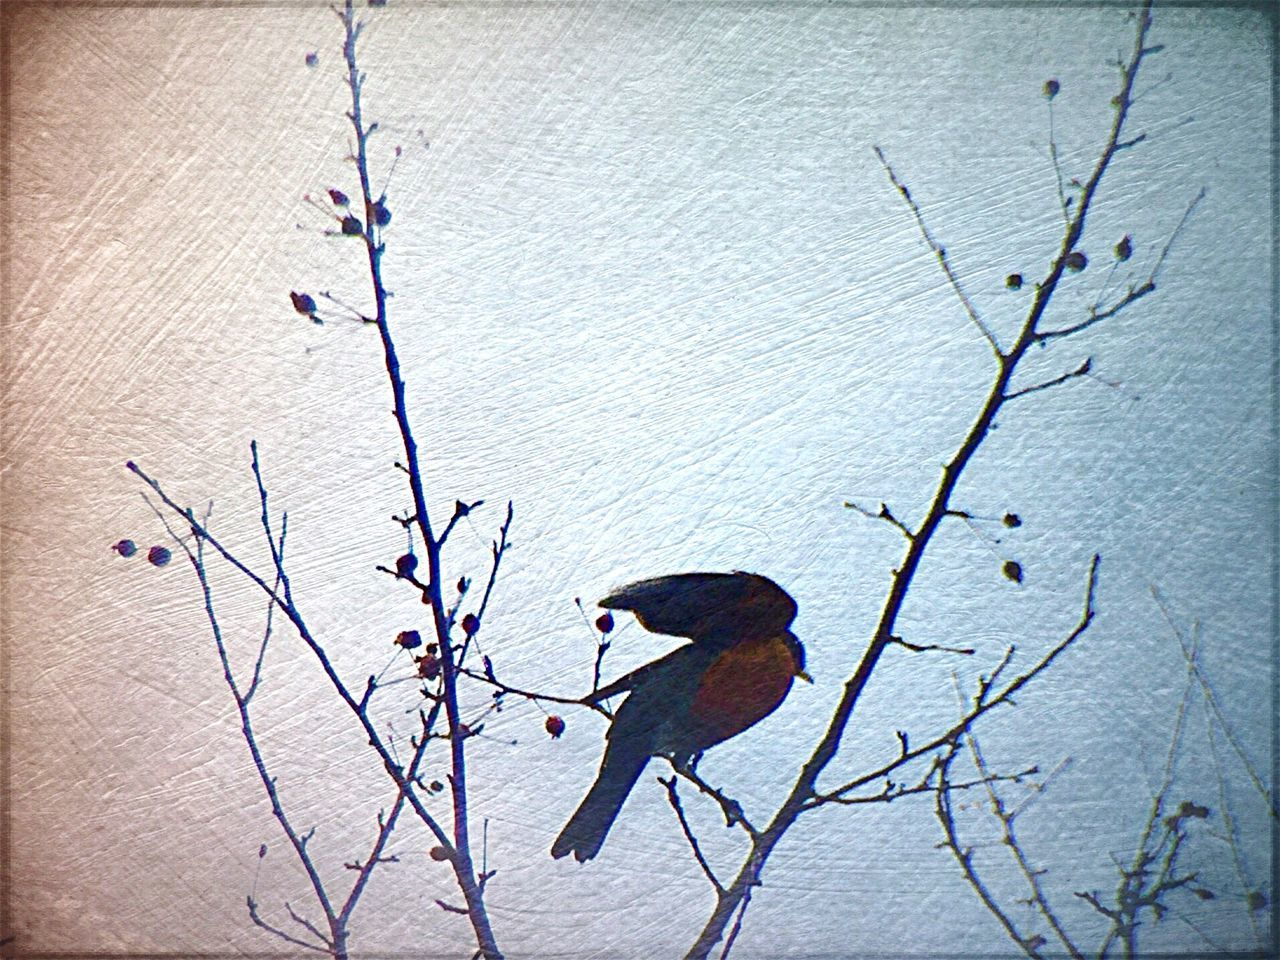 Showcase: February Photo of Robin by me and edited using Formulasapp ArtWork Bird Photography Birds Of EyeEm  Tree Branches Outdoor Photography Beautiful Nature Nature Photography Nature On Your Doorstep Photography Photoedit Clouds And Sky Photograph Single Object Singlebird Birds Singlebirdonbranch Taking Photos Photoart Gettyimages Beauty In Nature Treebranches